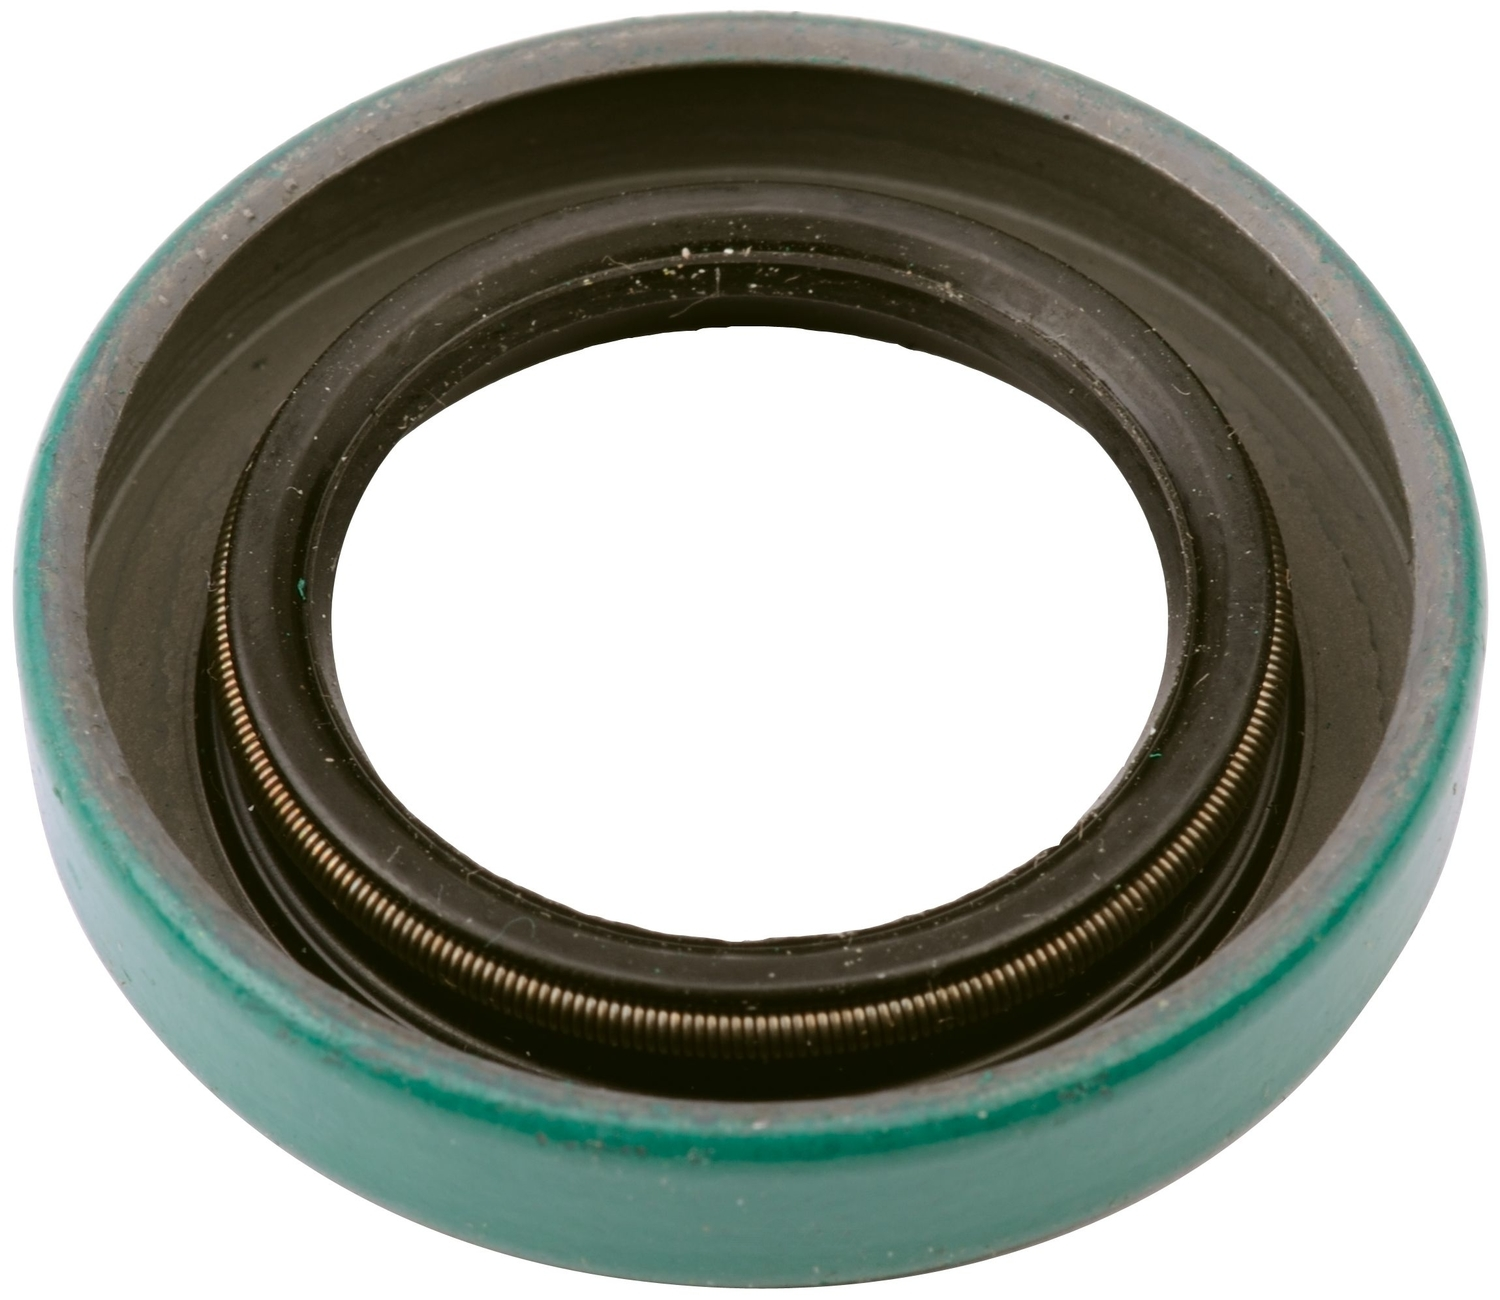 SKF (CHICAGO RAWHIDE) - Steering Gear Worm Shaft Seal - SKF 8648